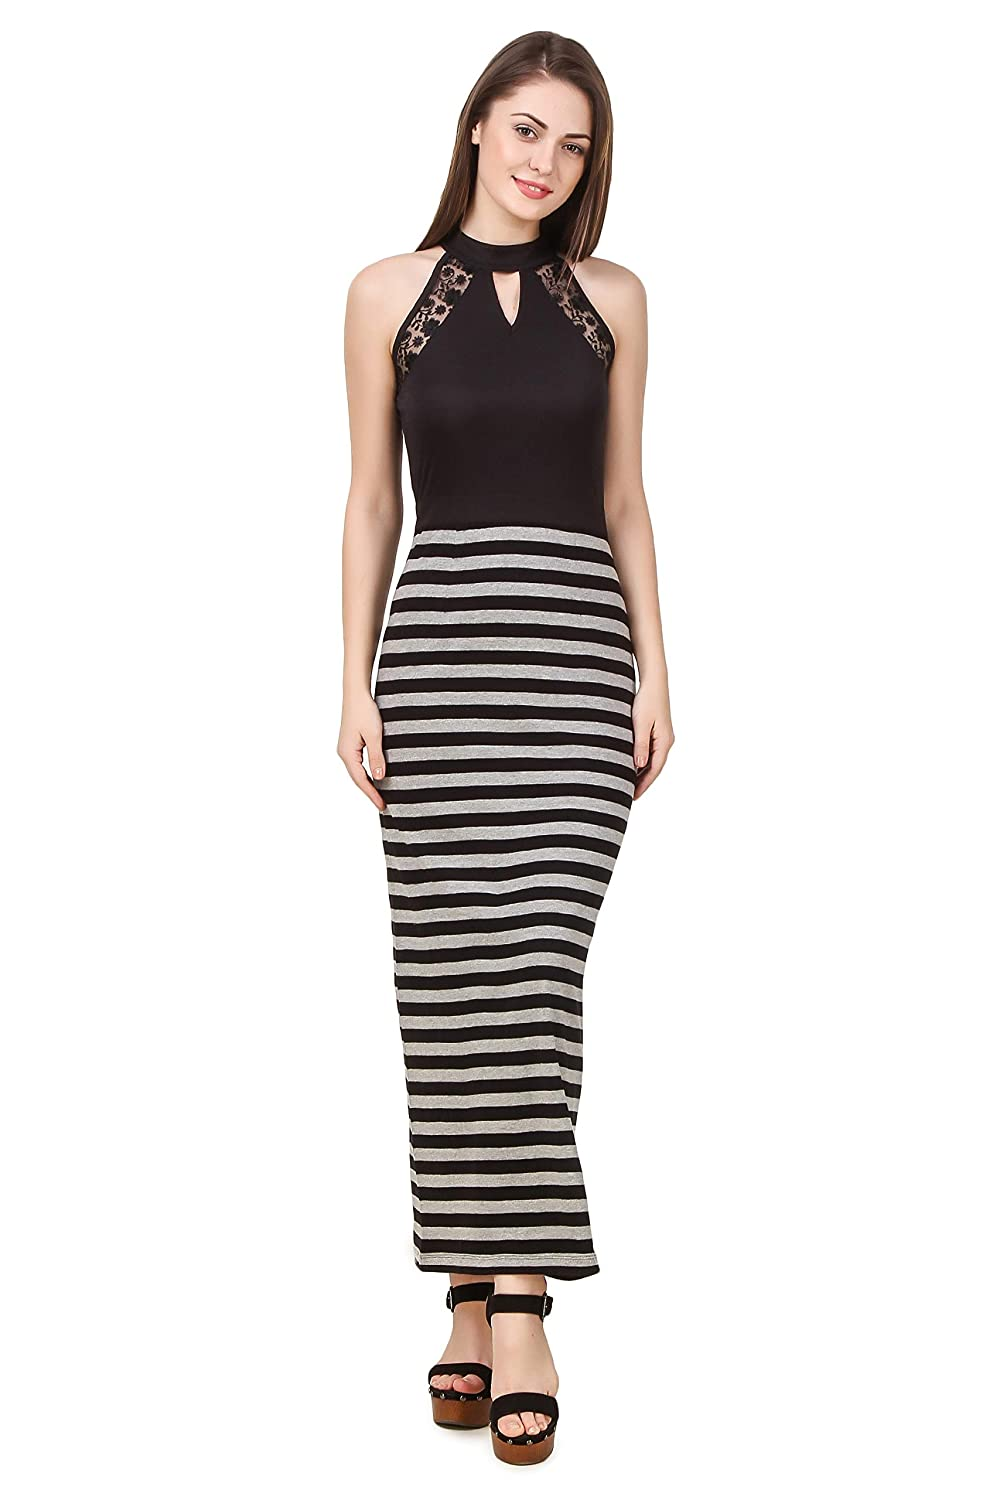 498c072c6 TEXCO Striped Lace Detailed Summer Maxi Women Dress: Amazon.in: Clothing &  Accessories